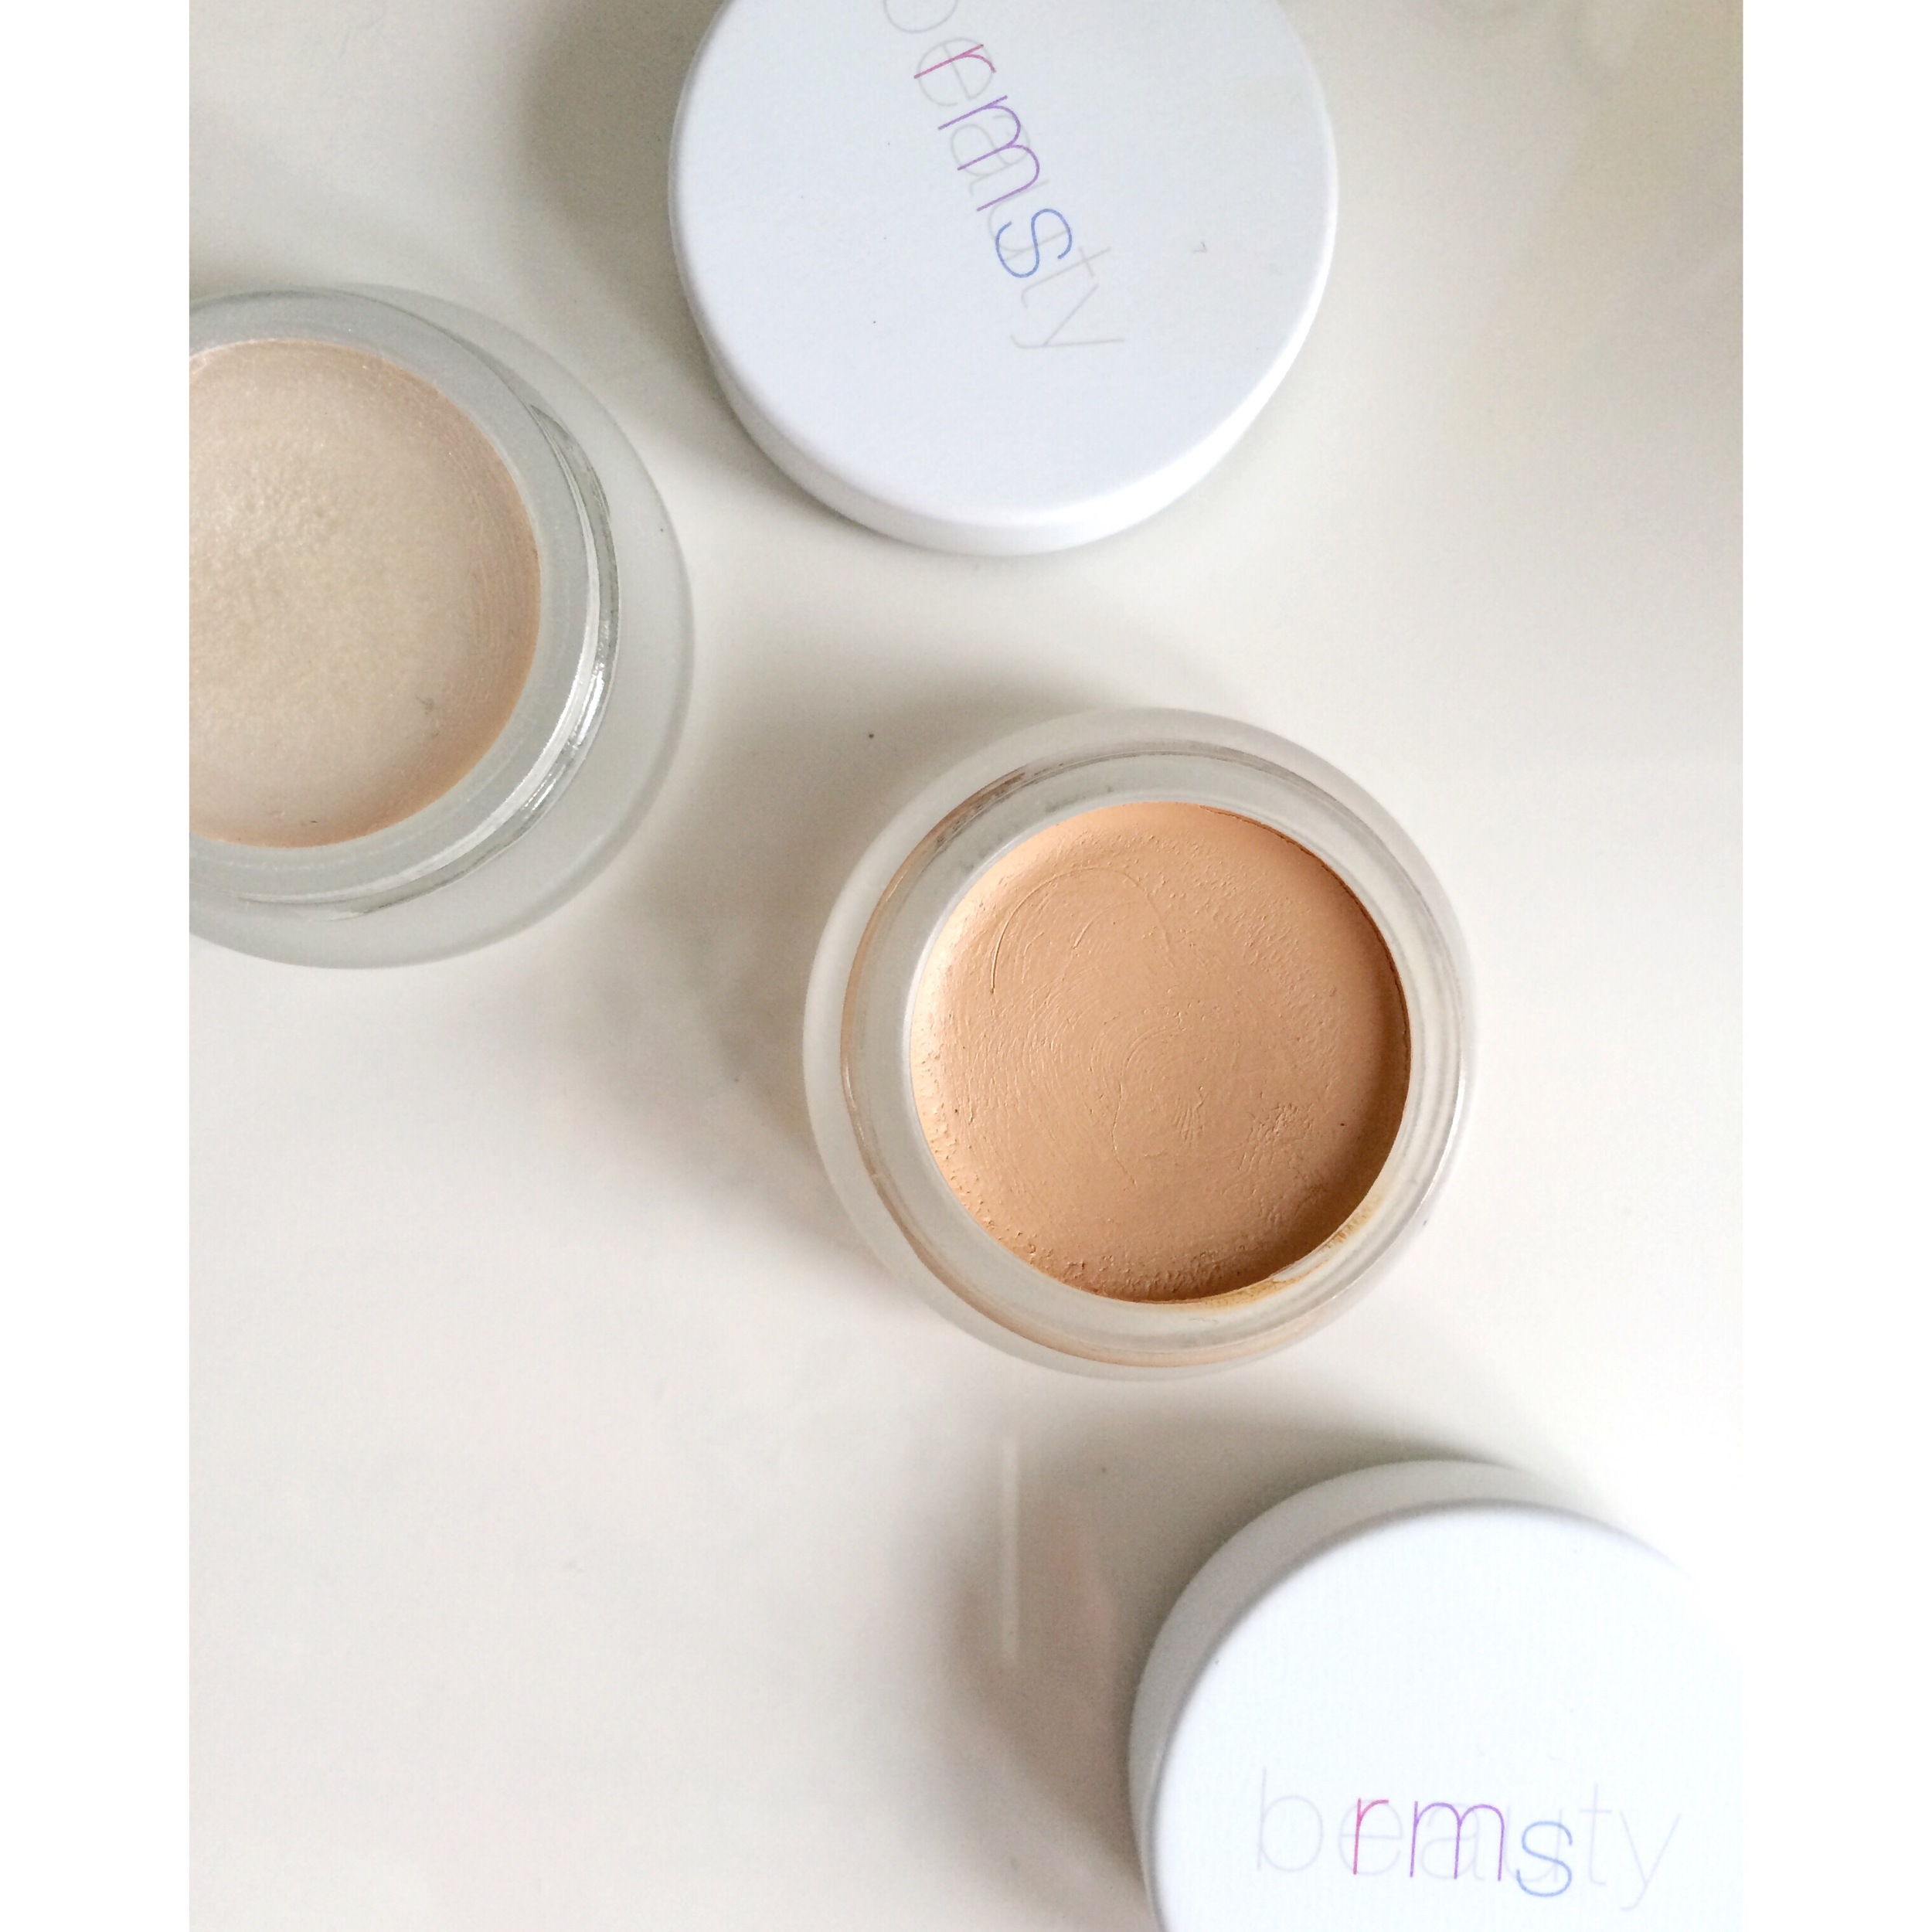 RMS Beauty 'Un' Cover Up shown here with RMS Beauty Living Luminizer